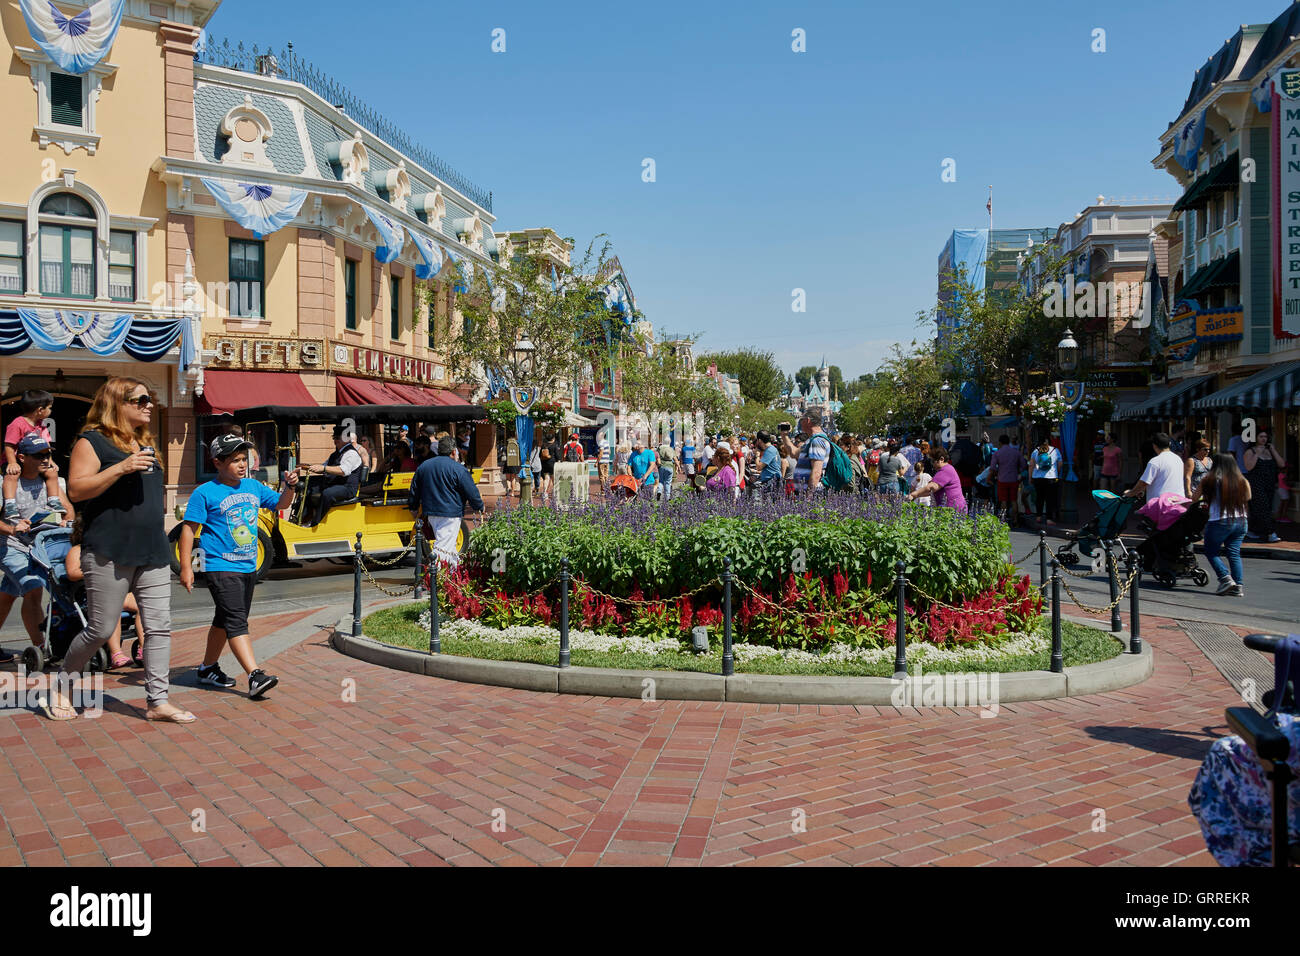 Main Street in Disney California USA with crowds of people on a really hot day. - Stock Image